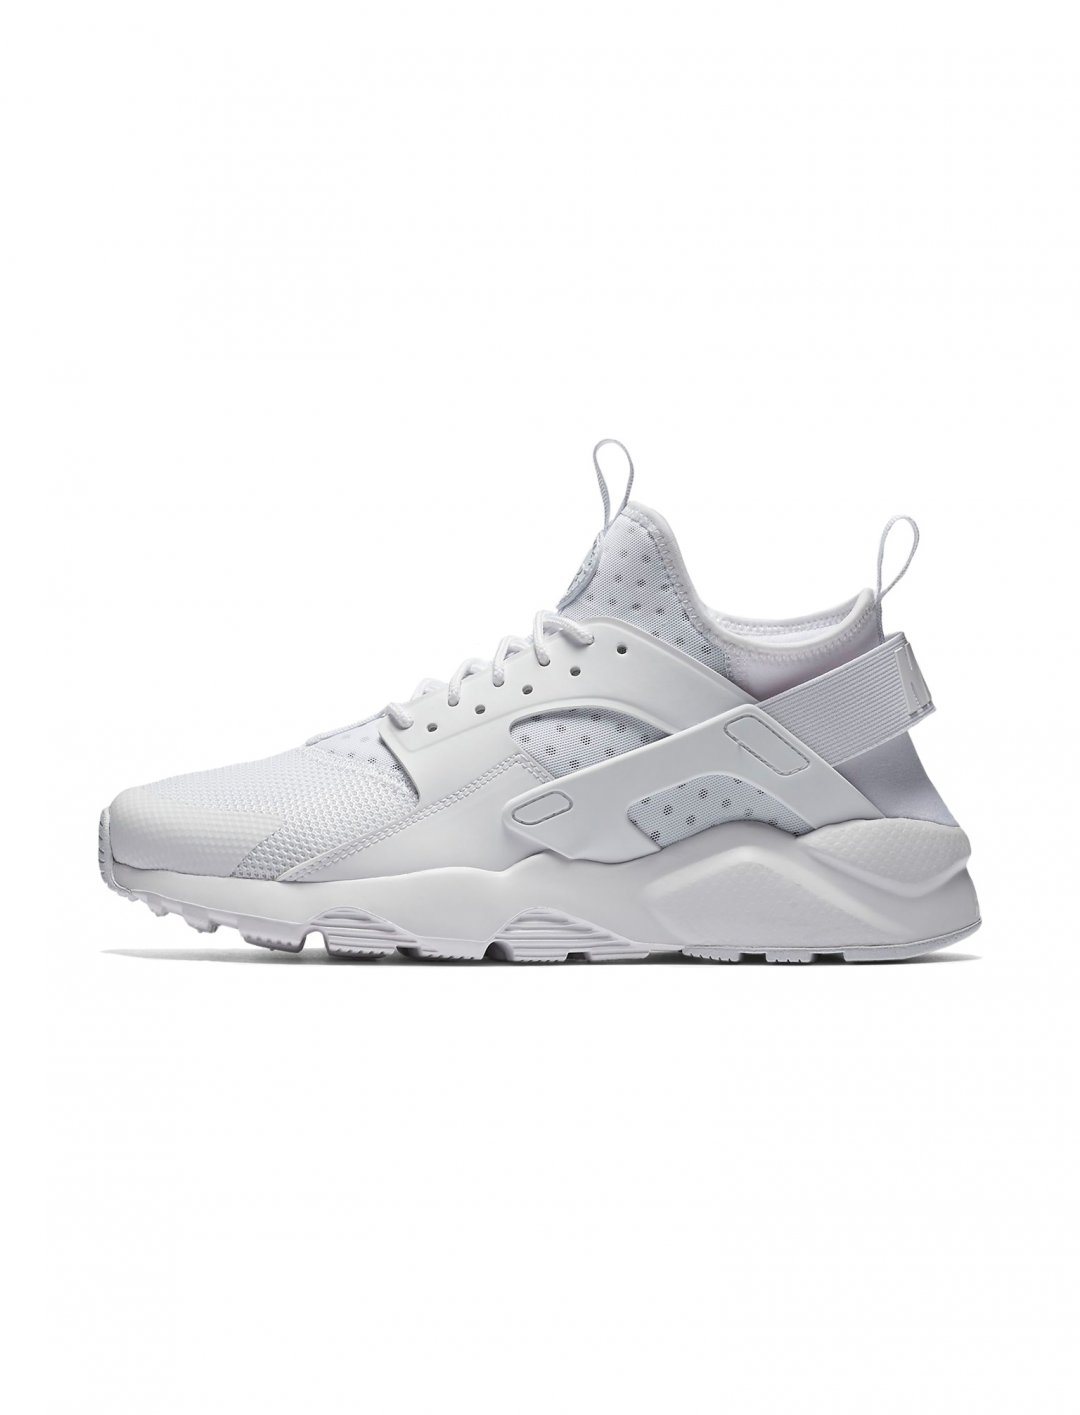 "Nike Air Huarache Ultra {""id"":12,""product_section_id"":1,""name"":""Shoes"",""order"":12} Nike"